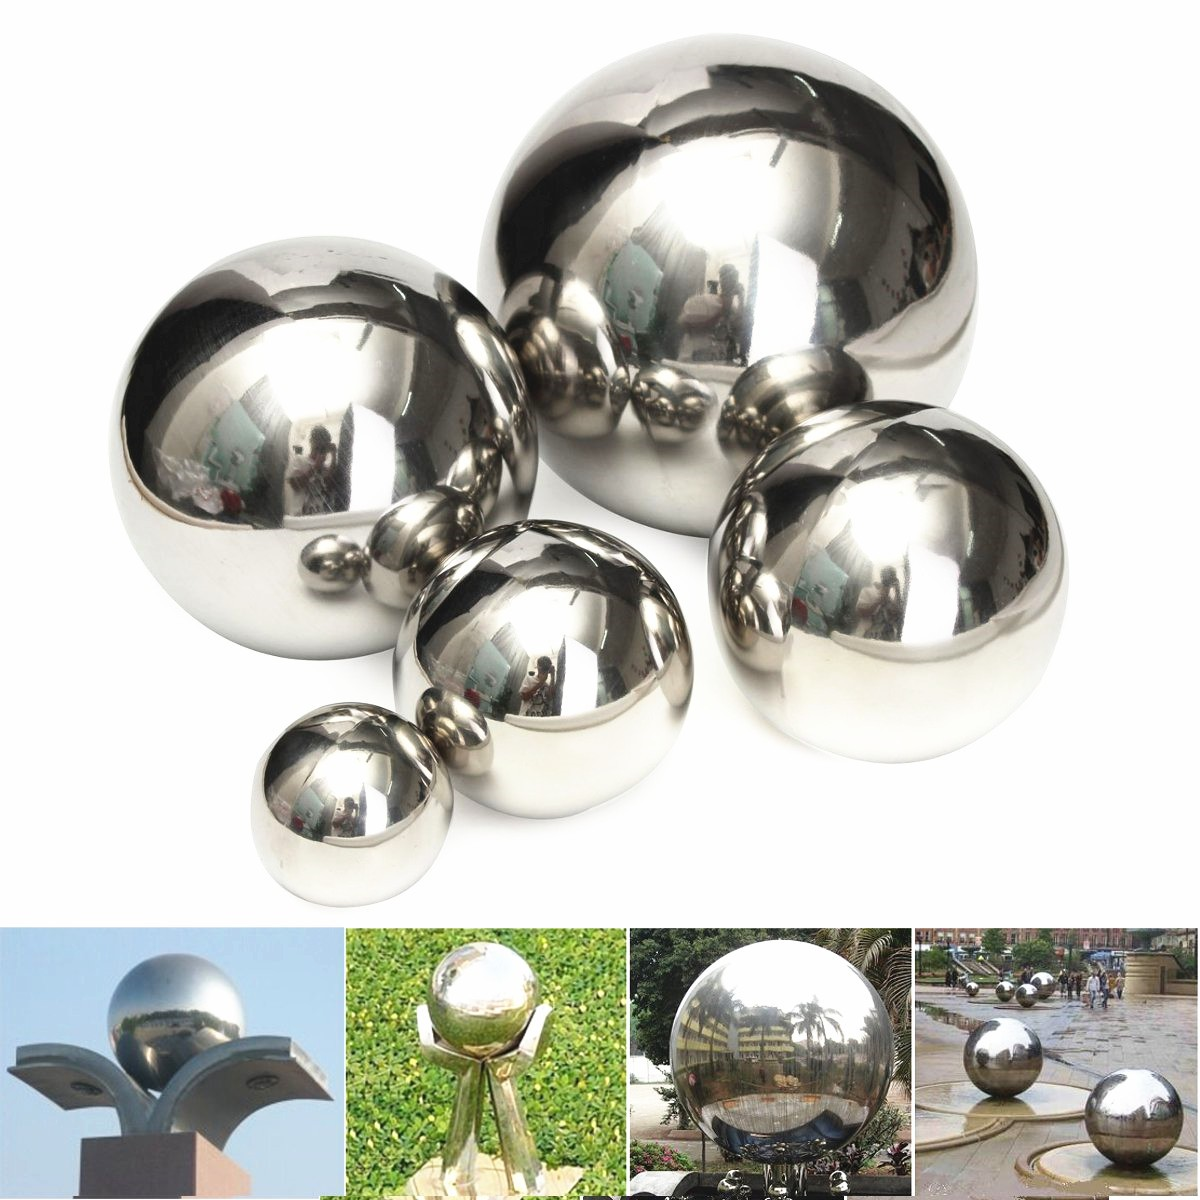 Stainless Steel Mirror Ball Polished Hollow Ball Hardware Accessories 5/8/10/12/15cm gloden 304 stainless steel hollow ball steel ball ball ornaments decorative titanium balls 80 90 100mm 3pcs